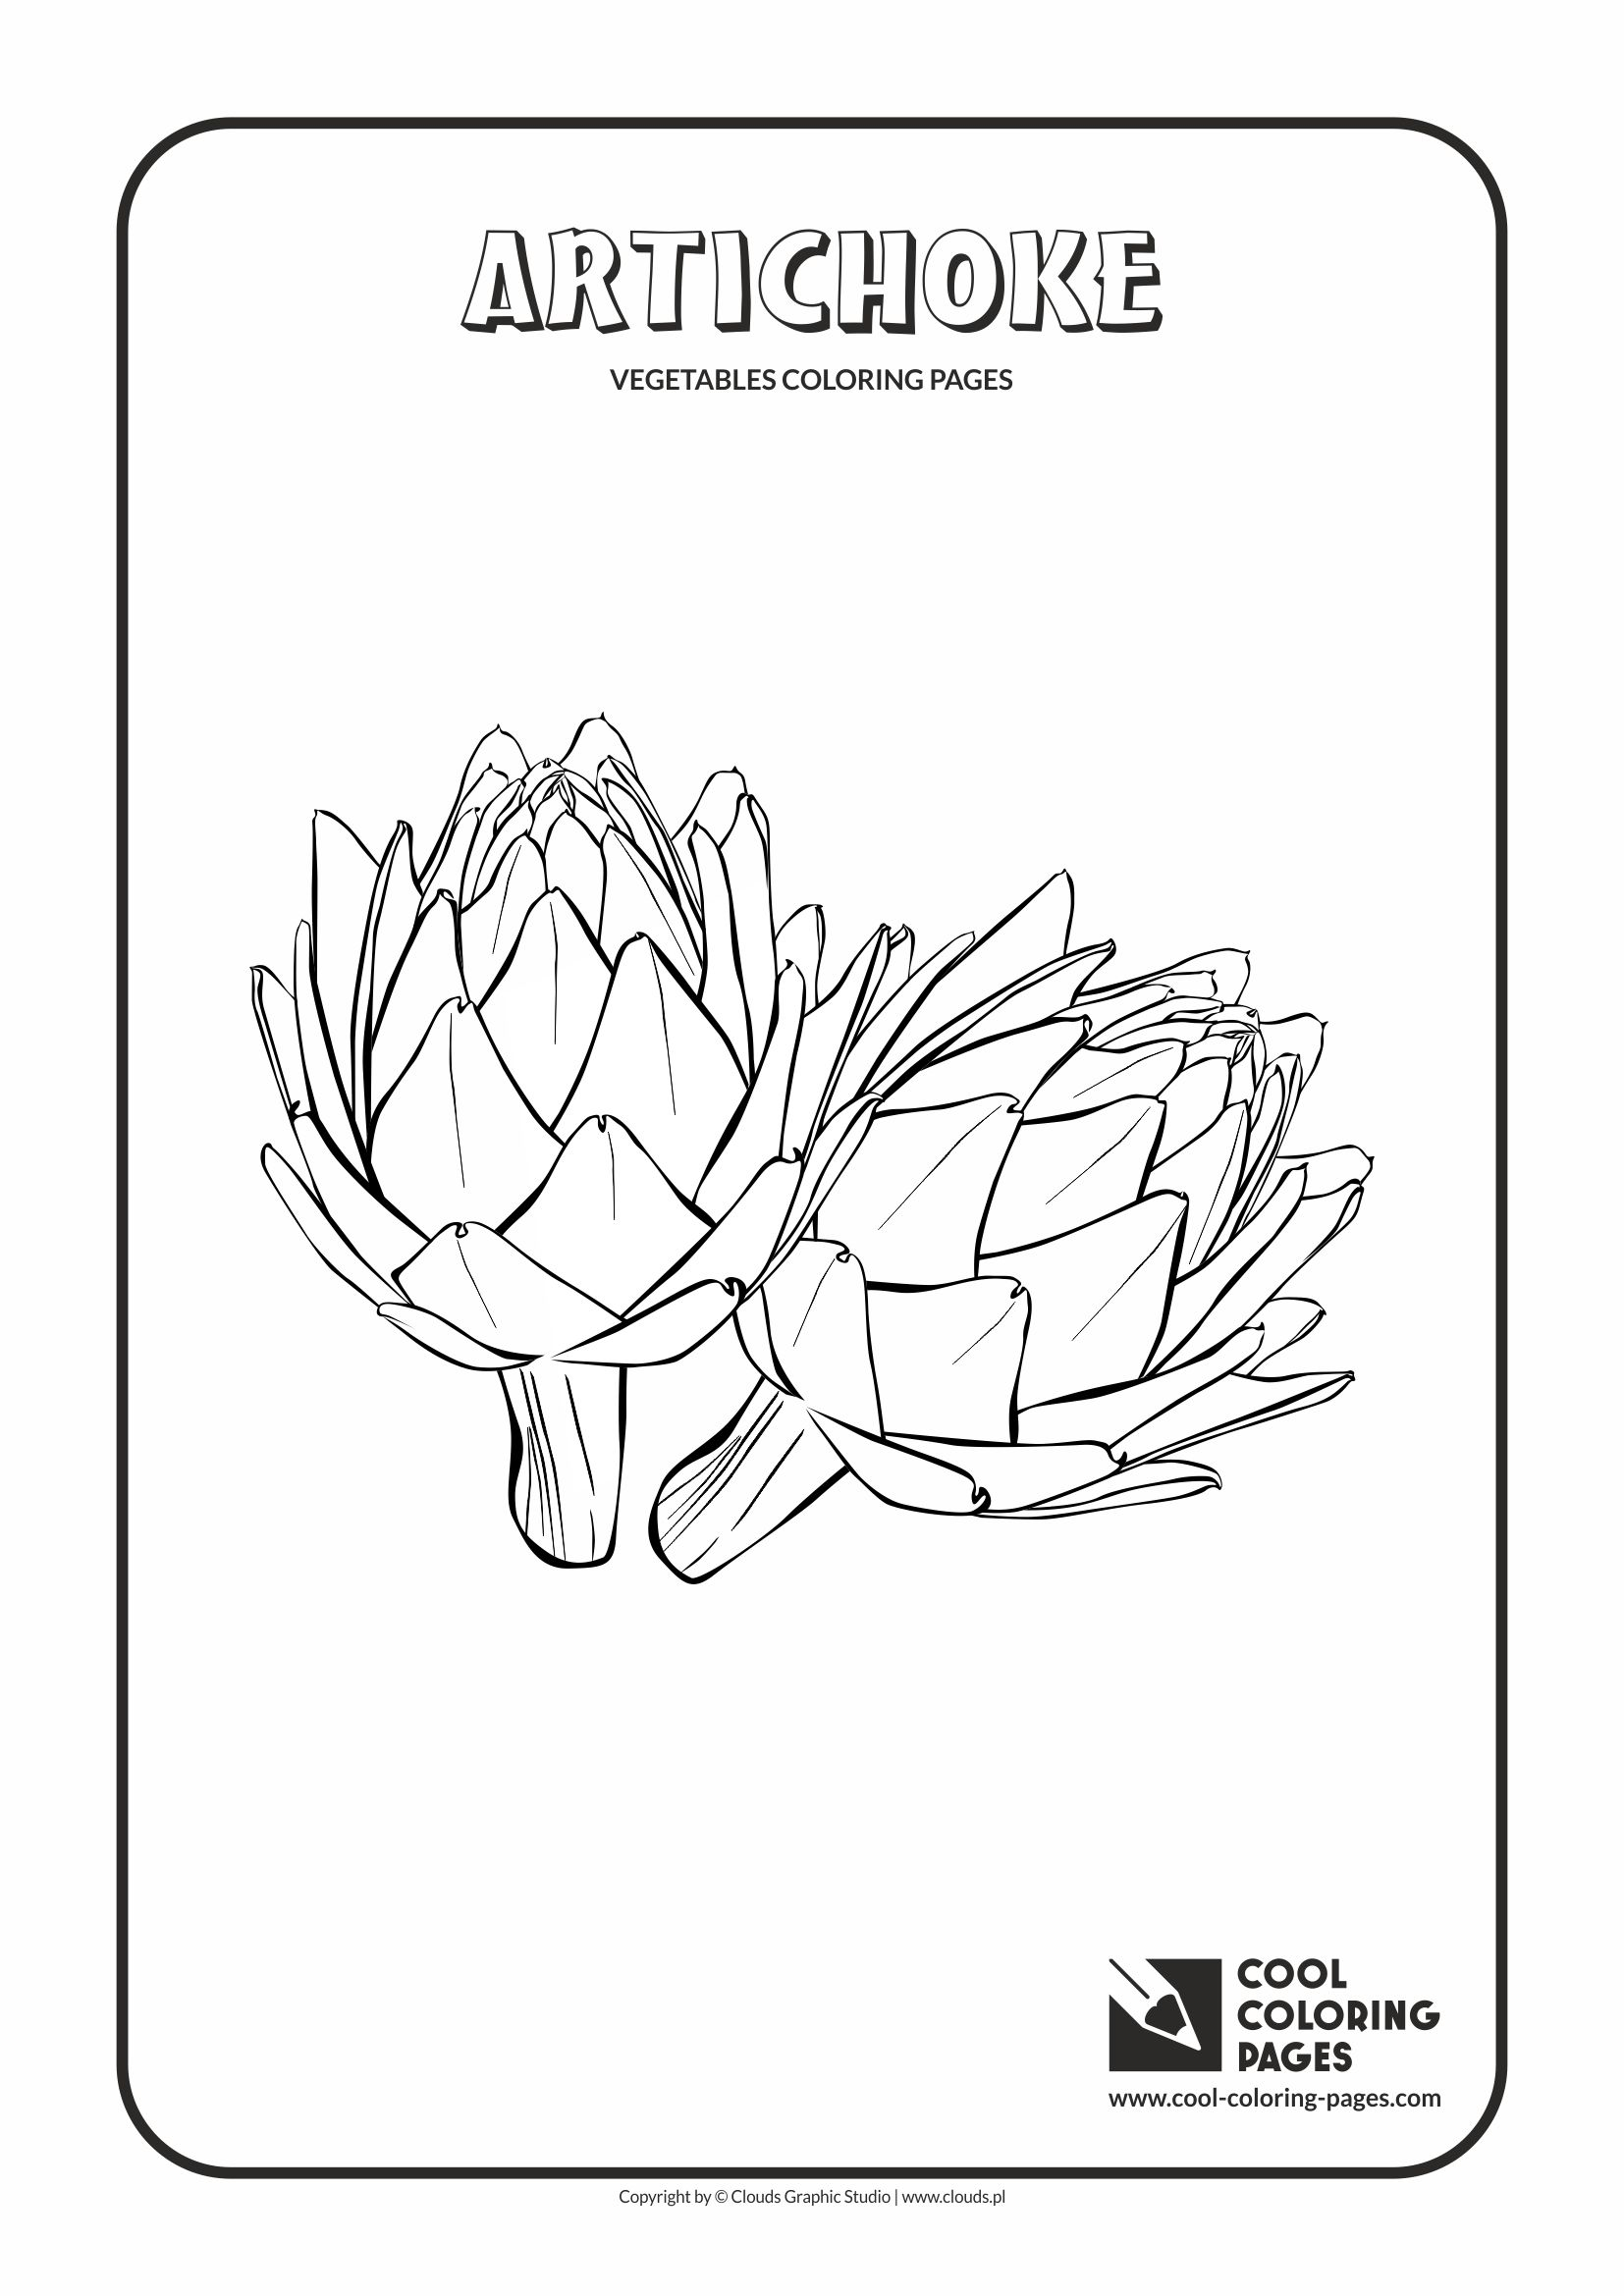 Cool Coloring Pages - Plants / Artichoke / Coloring page with artichoke